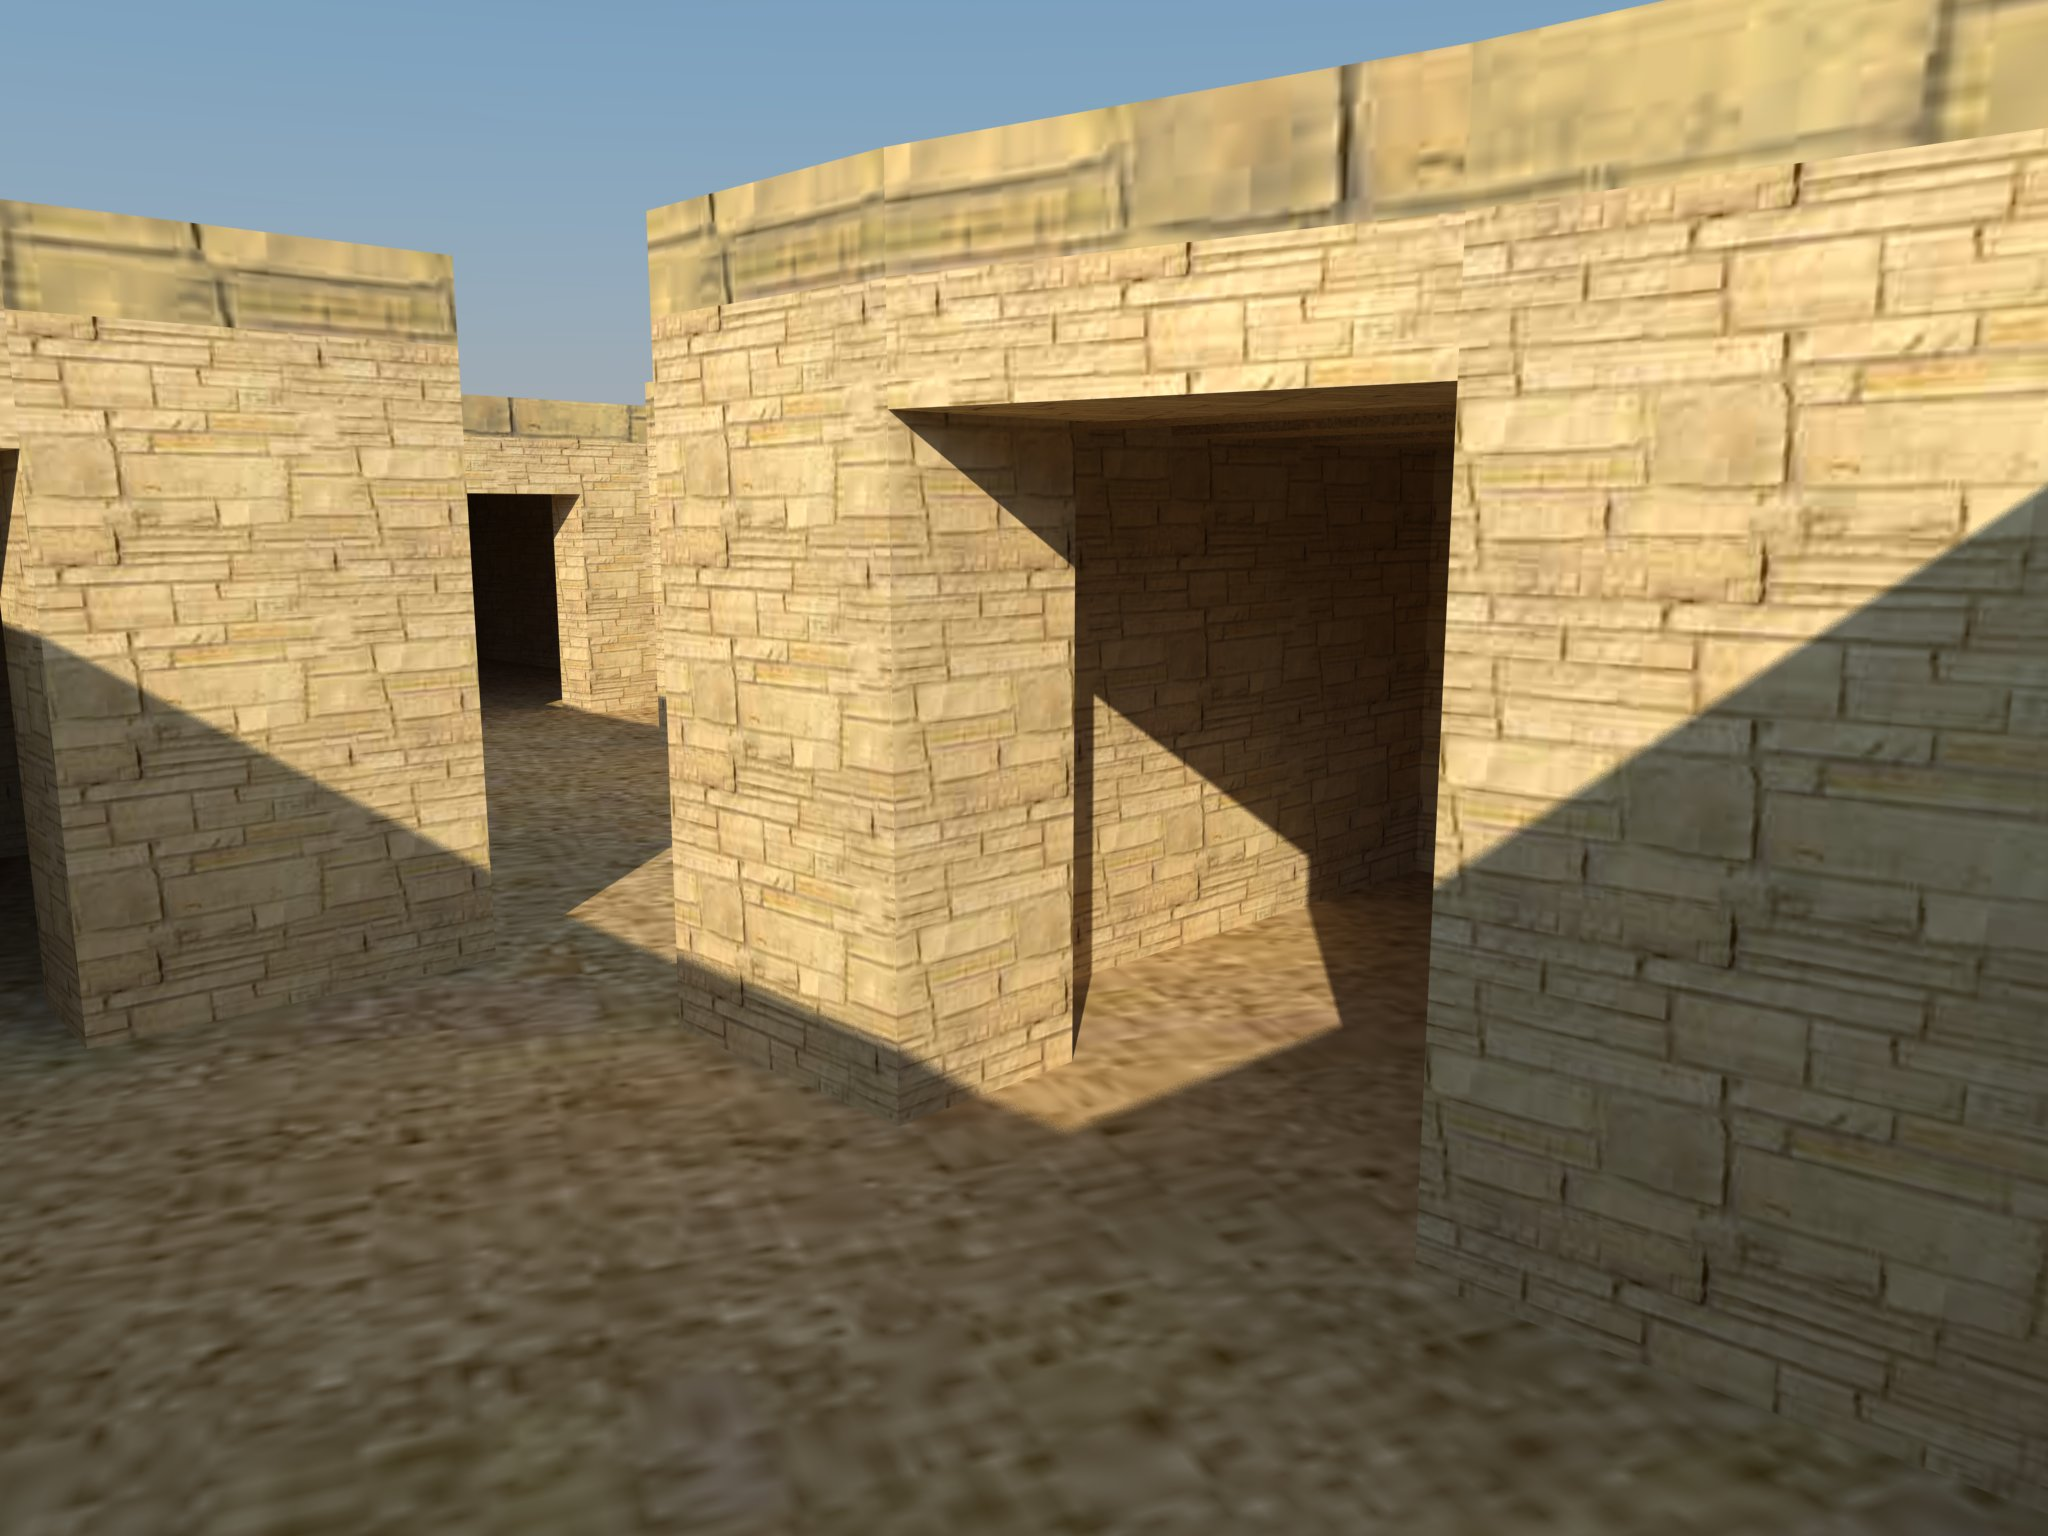 Creating a 3D Model of the Town of Zagora with Sketchup – 3D